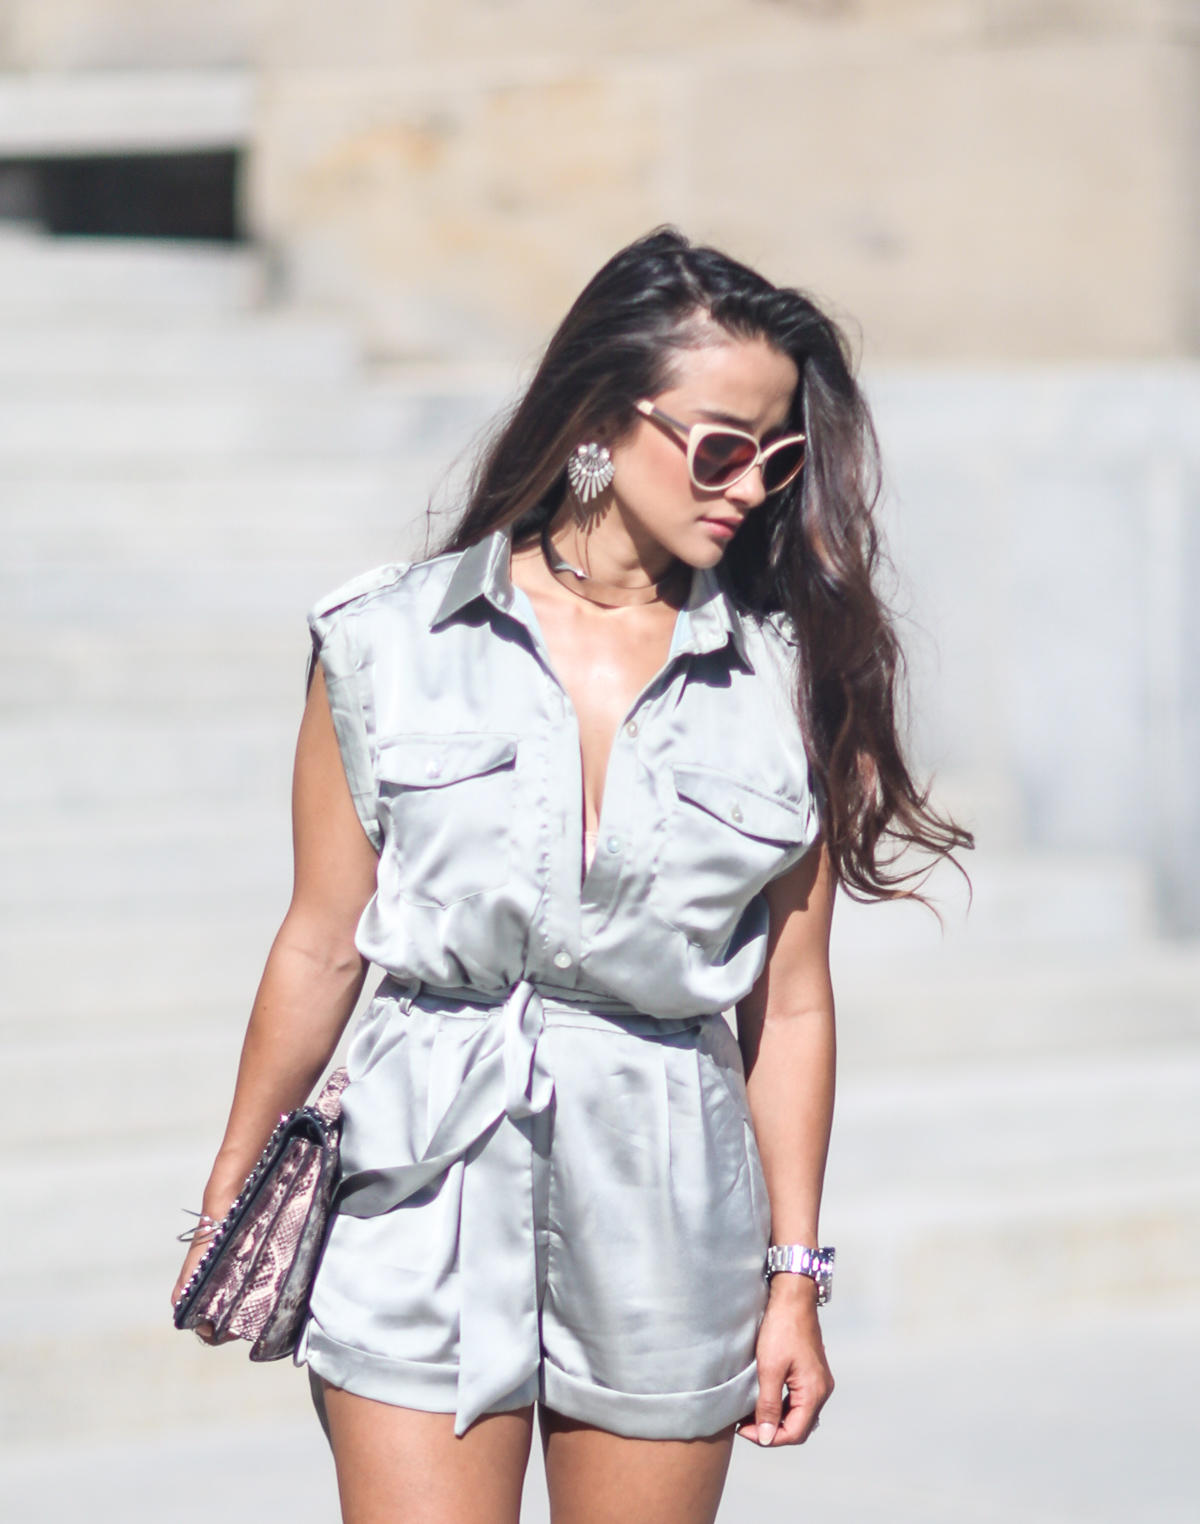 Silk Romper, Silk playsuit, silk trend, silk fashion, The Boutique in Miami, Fashion Blogger, Style Blogger, MissGuided Plex